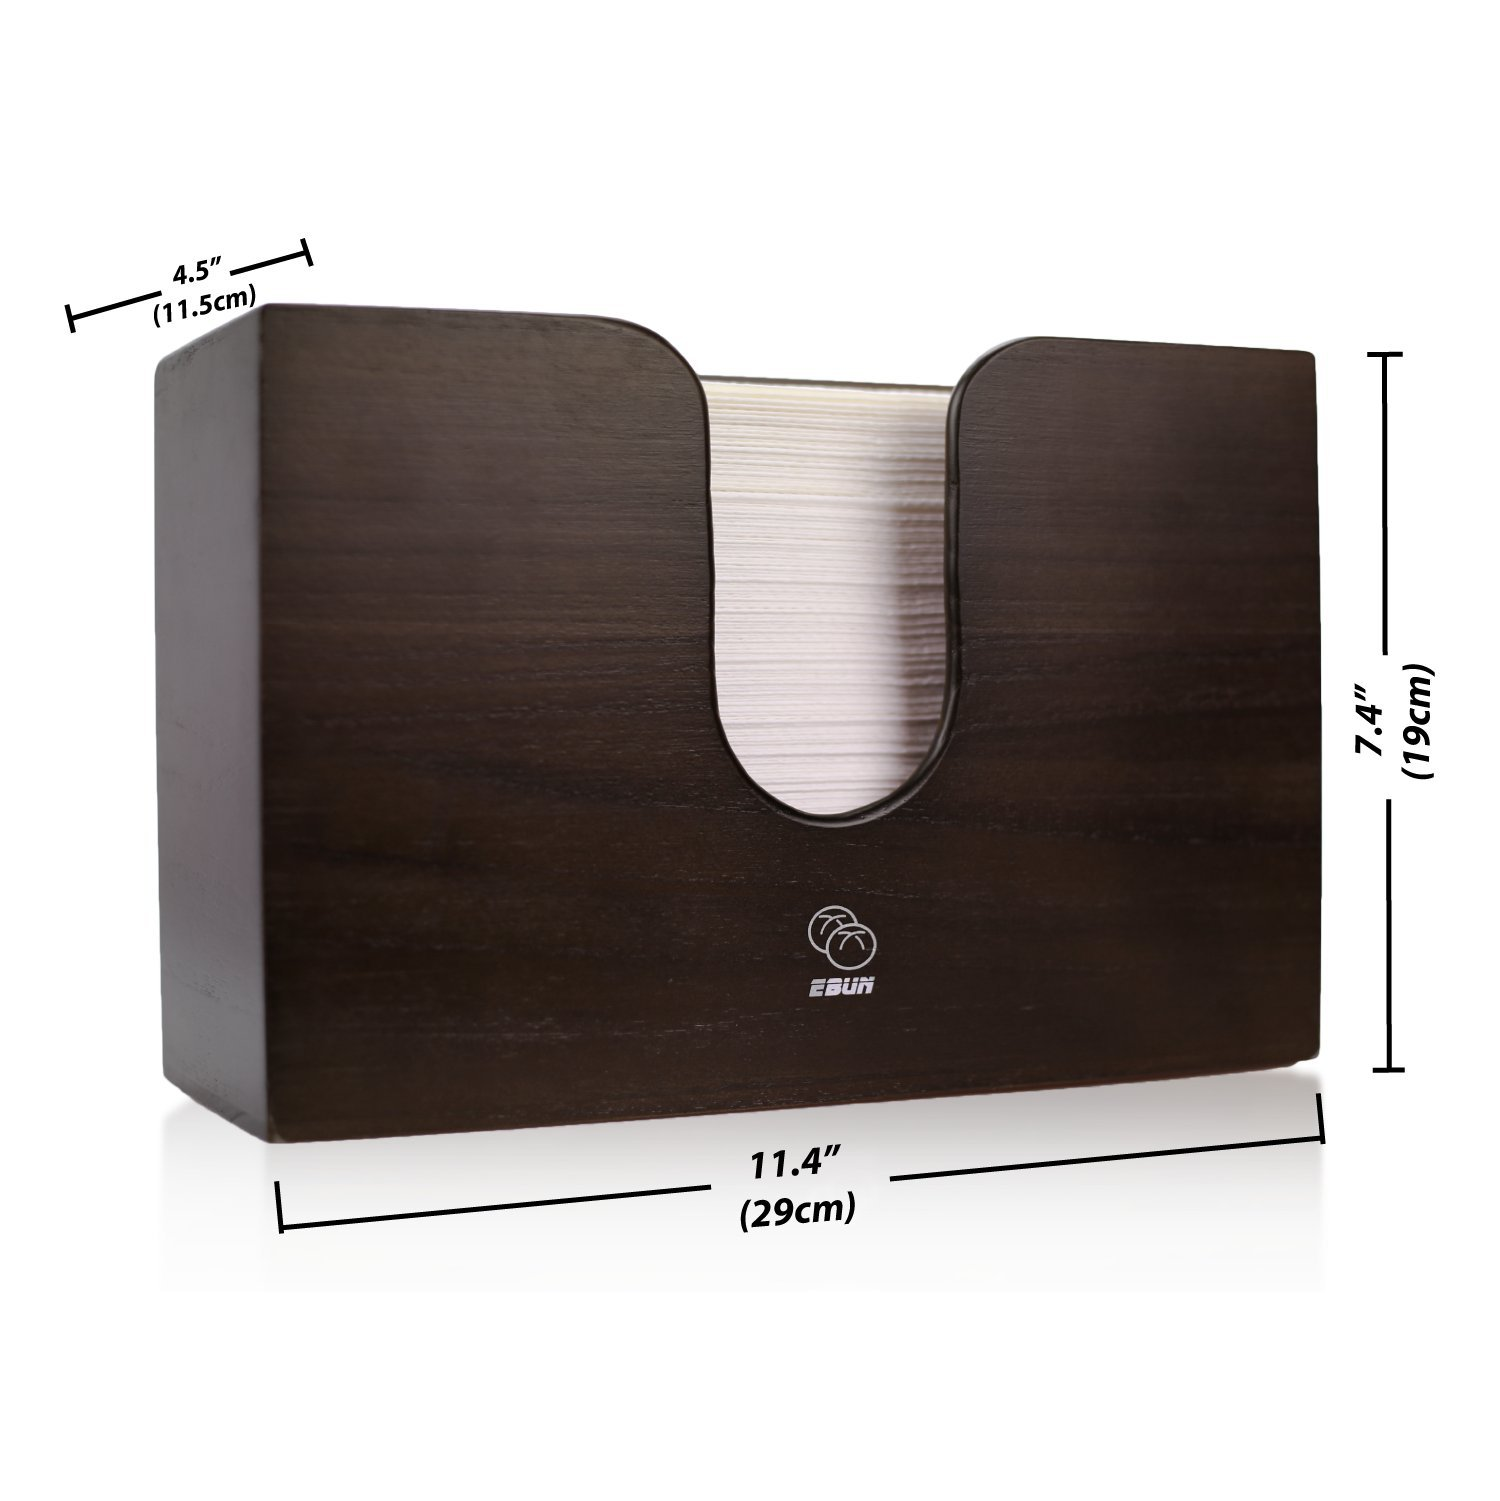 Wooden Paper Towel Dispenser for Kitchen & Bathroom - Wall Mount/Countertop Multifold Paper Towel, C-Fold, Zfold, Tri fold Hand Towel Holder Commercial (Brown) by eBun (Image #7)